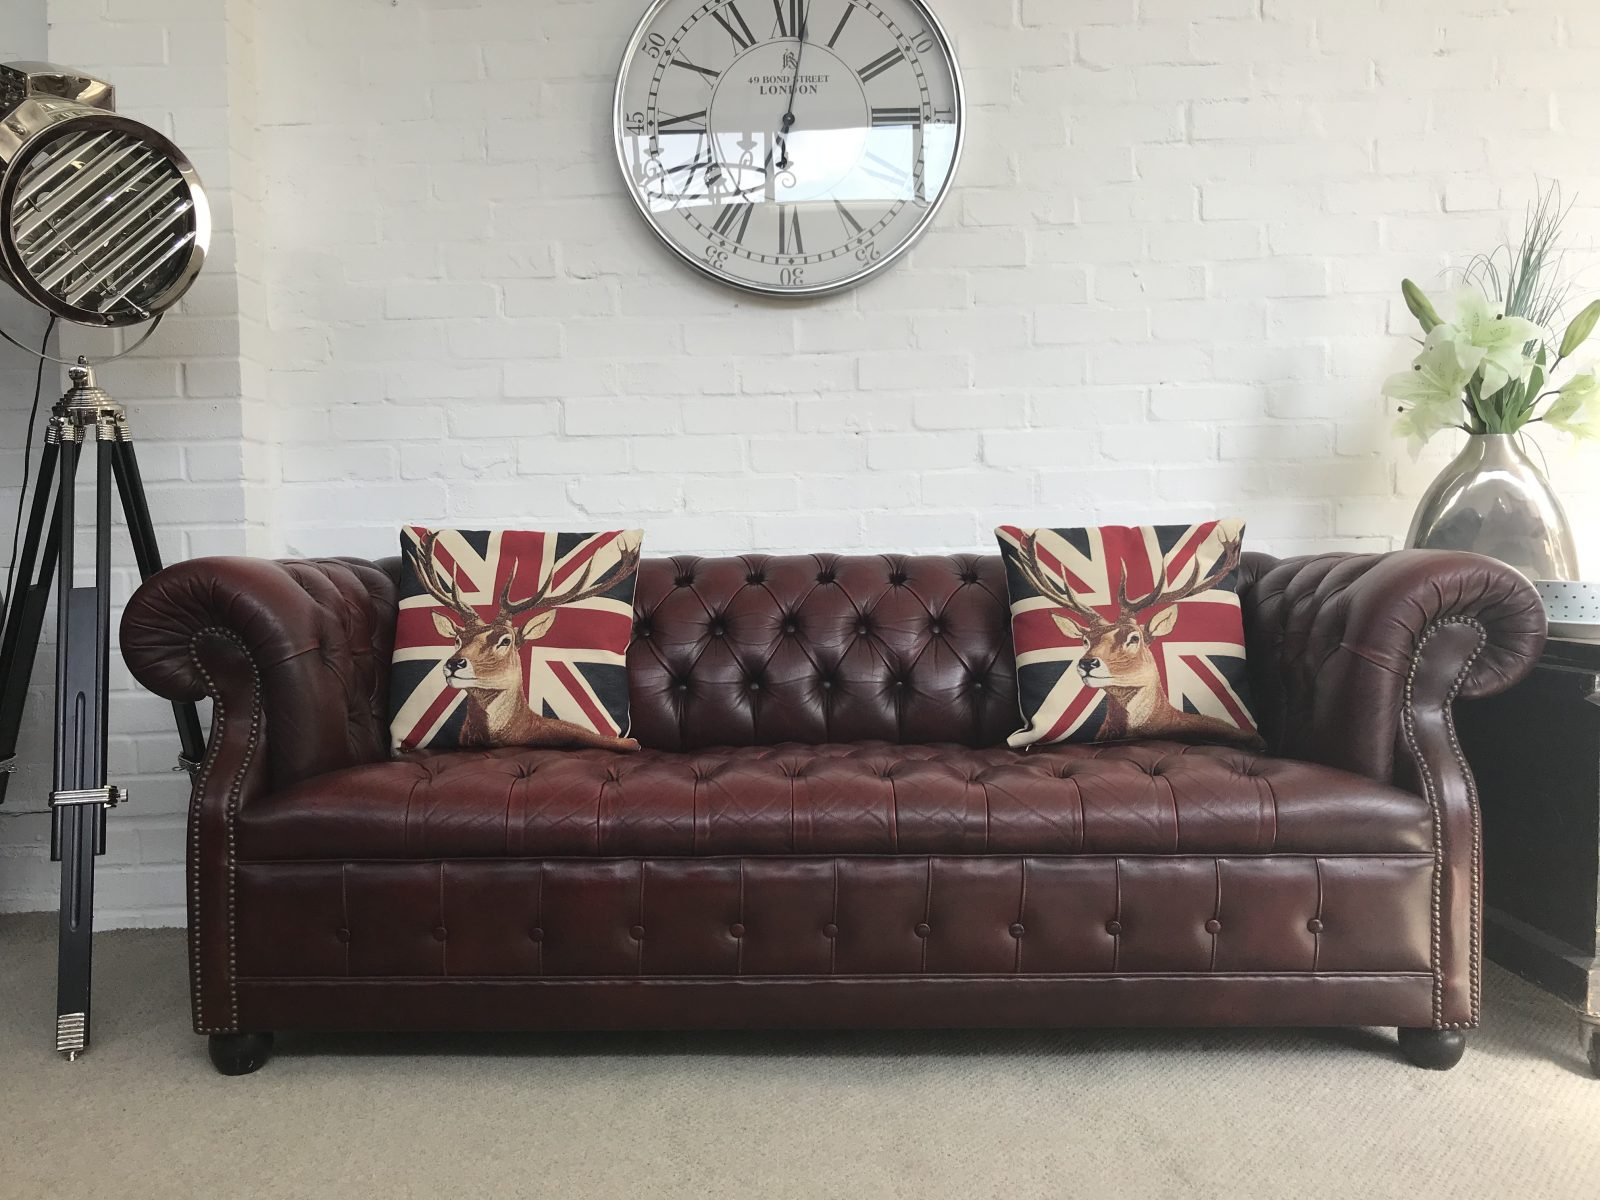 oxblood red chesterfield sofa craftmaster construction chesterfields at the boathouse  vintage sofas